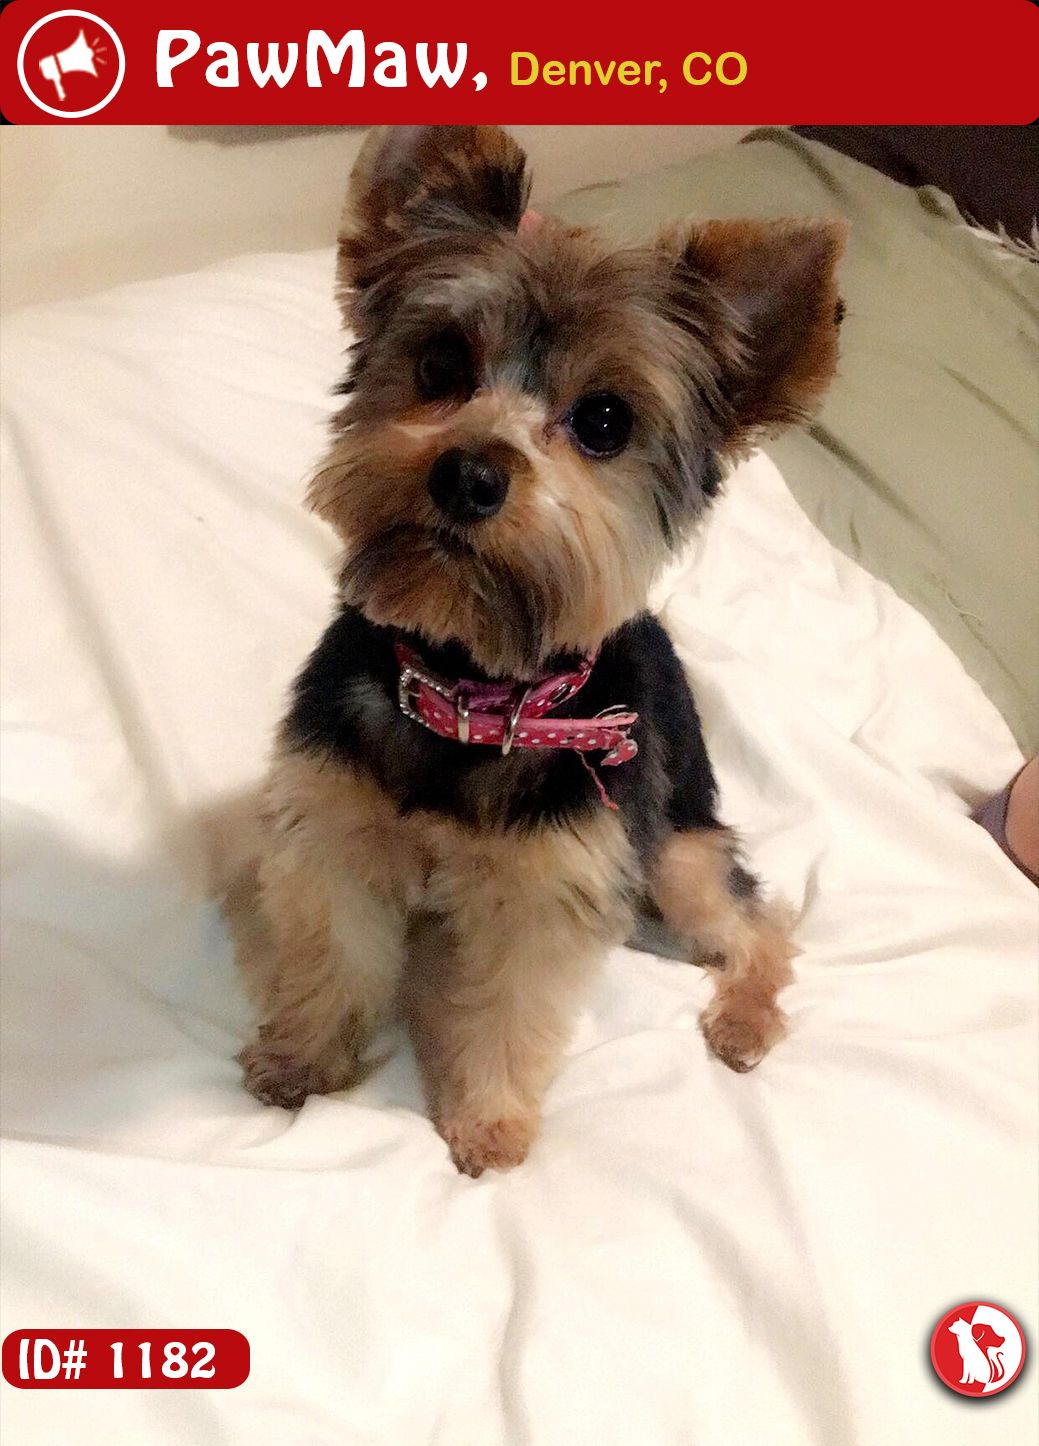 Species Dog Color Black Gold Gender Unknown Breed Yorkshire Terrier Pet Description She S Very Small Weights About 4 Lbs S Losing A Dog Pets Losing A Pet